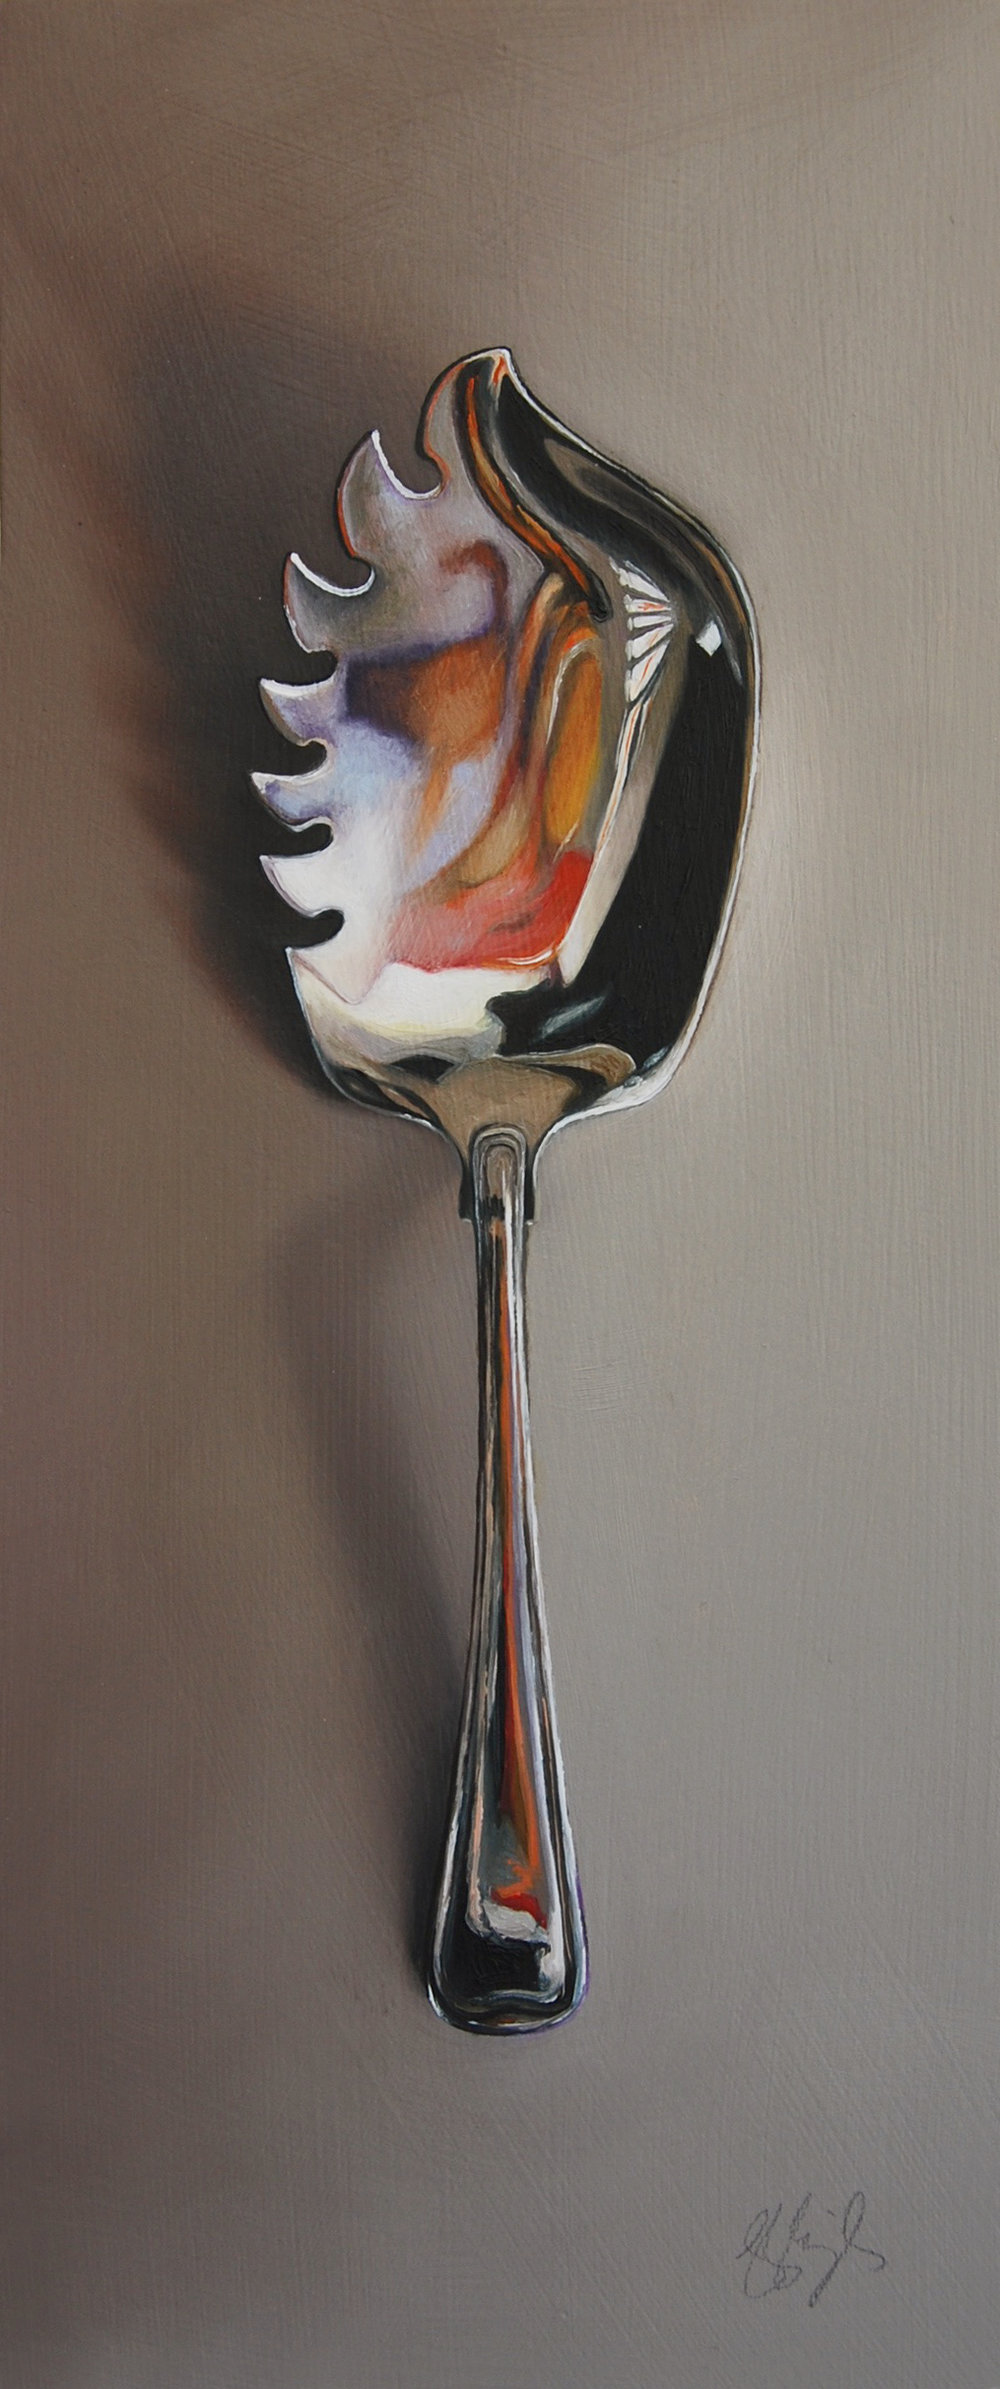 "Silver spoon #143, The Nonconformist  Oil on panel, 2018. 12x5"" Available at  George Billis Gallery,  New York"